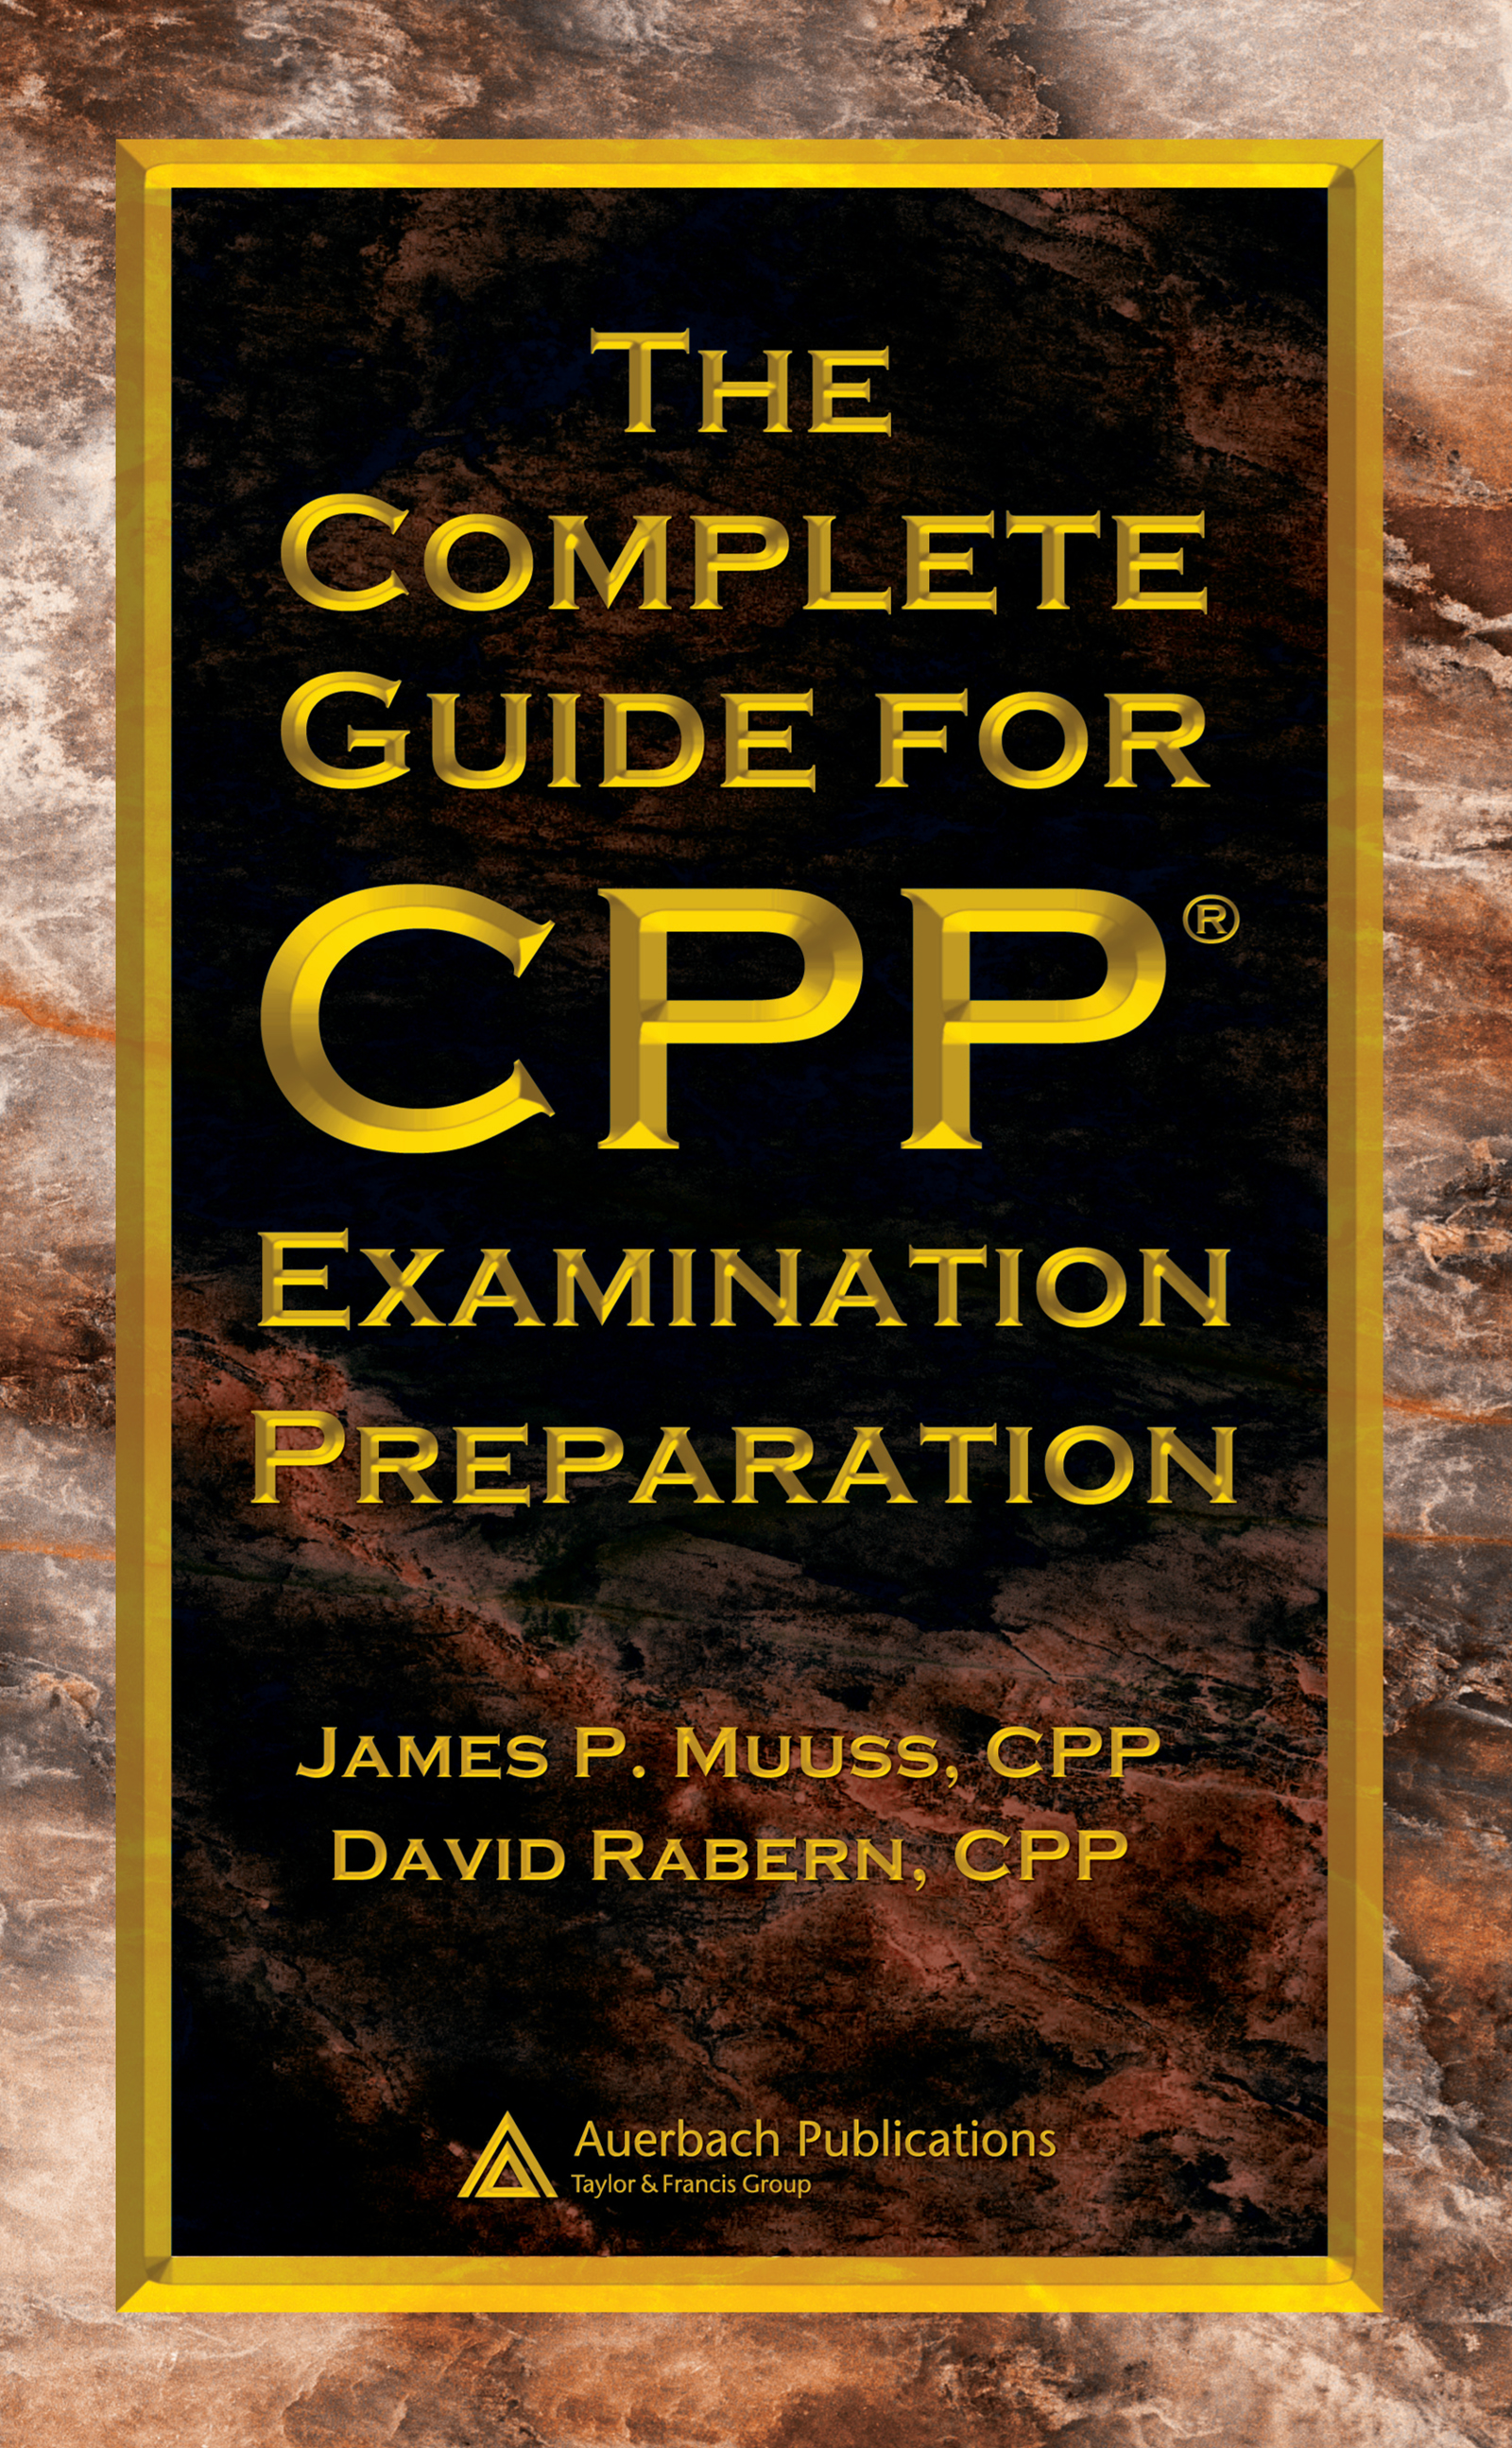 Download Ebook The Complete Guide for CPP Examination Preparation by Muuss, CPP, James P. Pdf